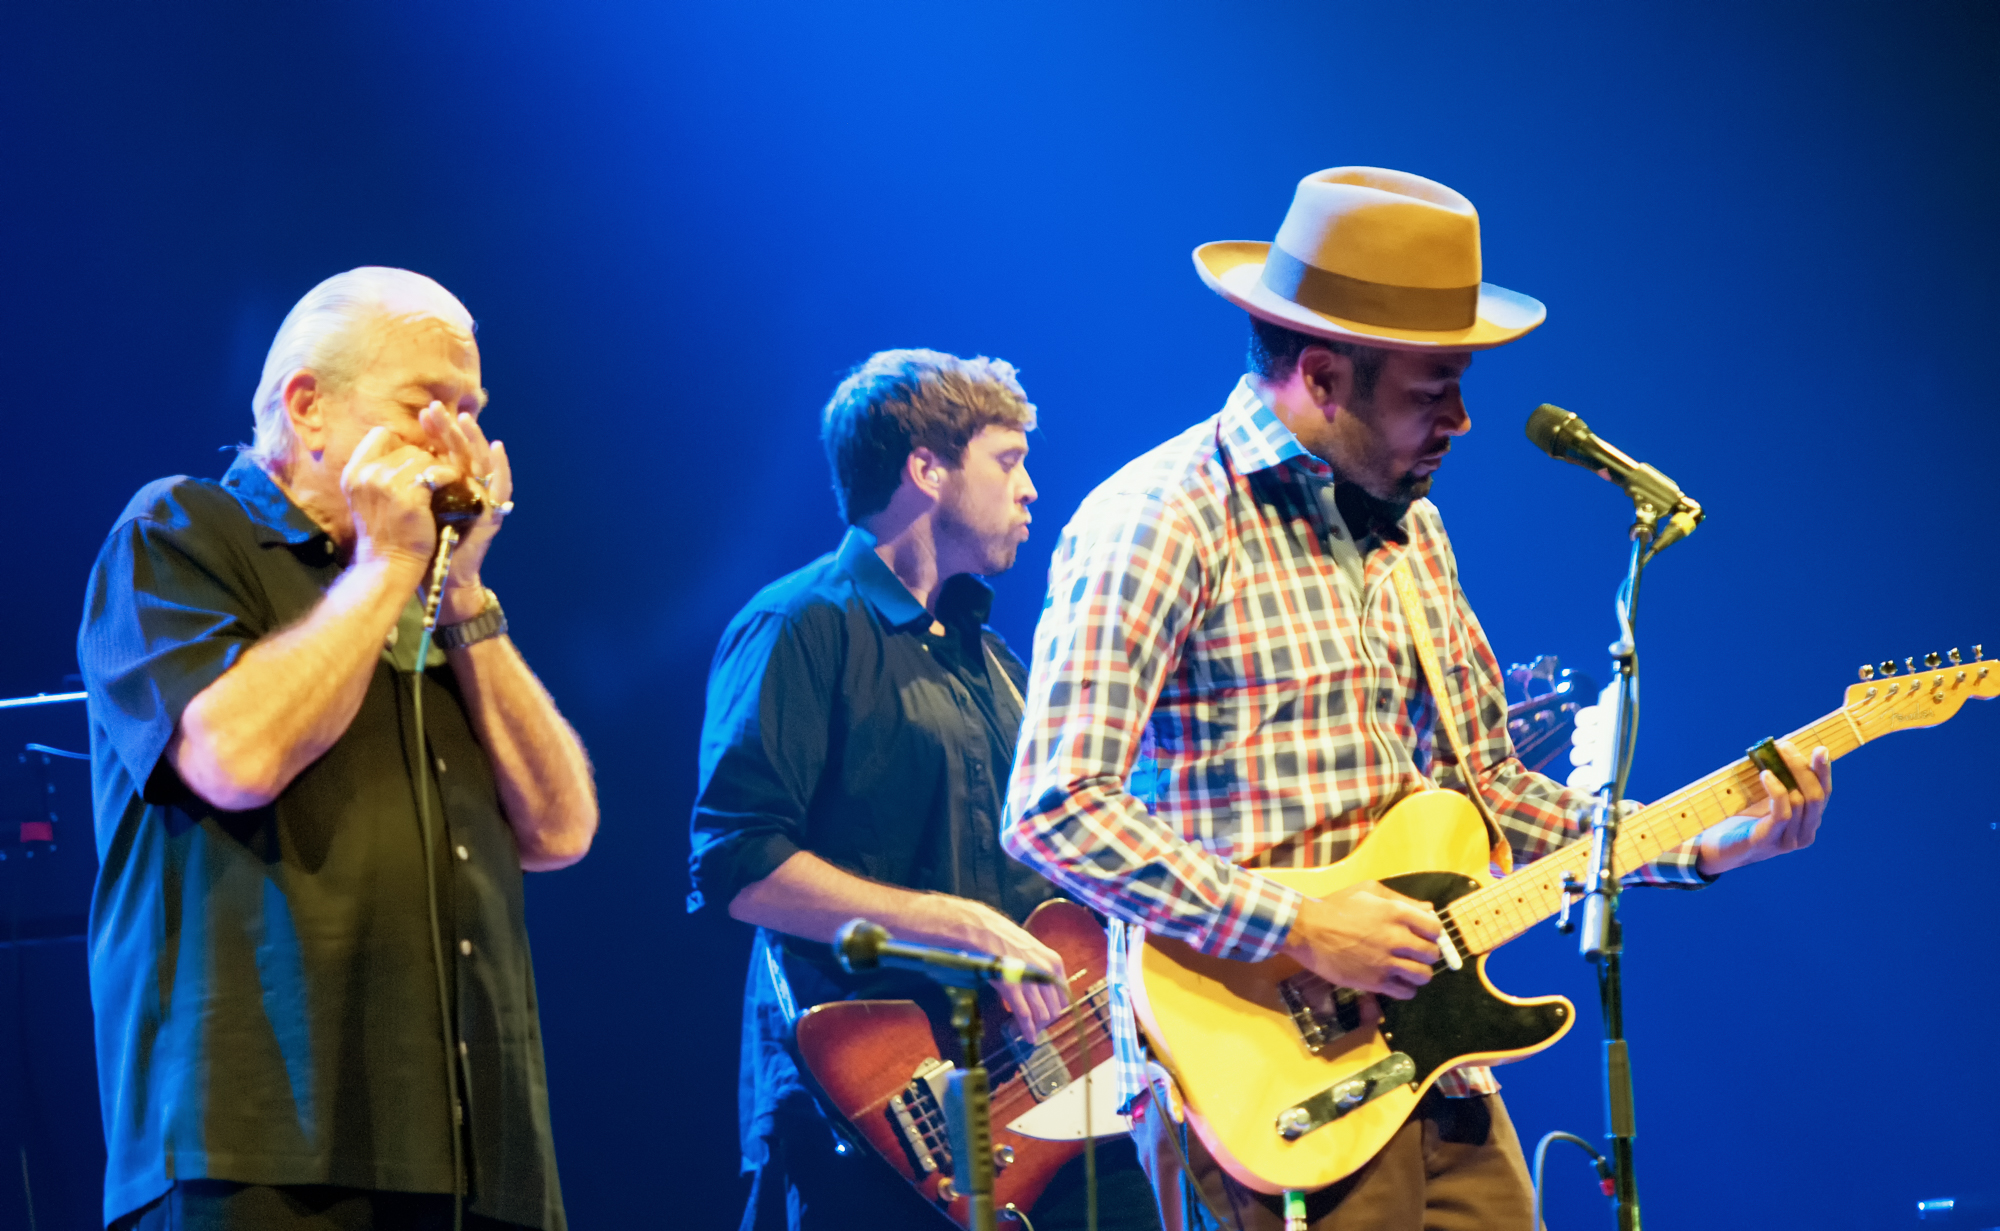 Charlie Musselwhite and Ben Harper at the Montreal International Jazz Festival 2014